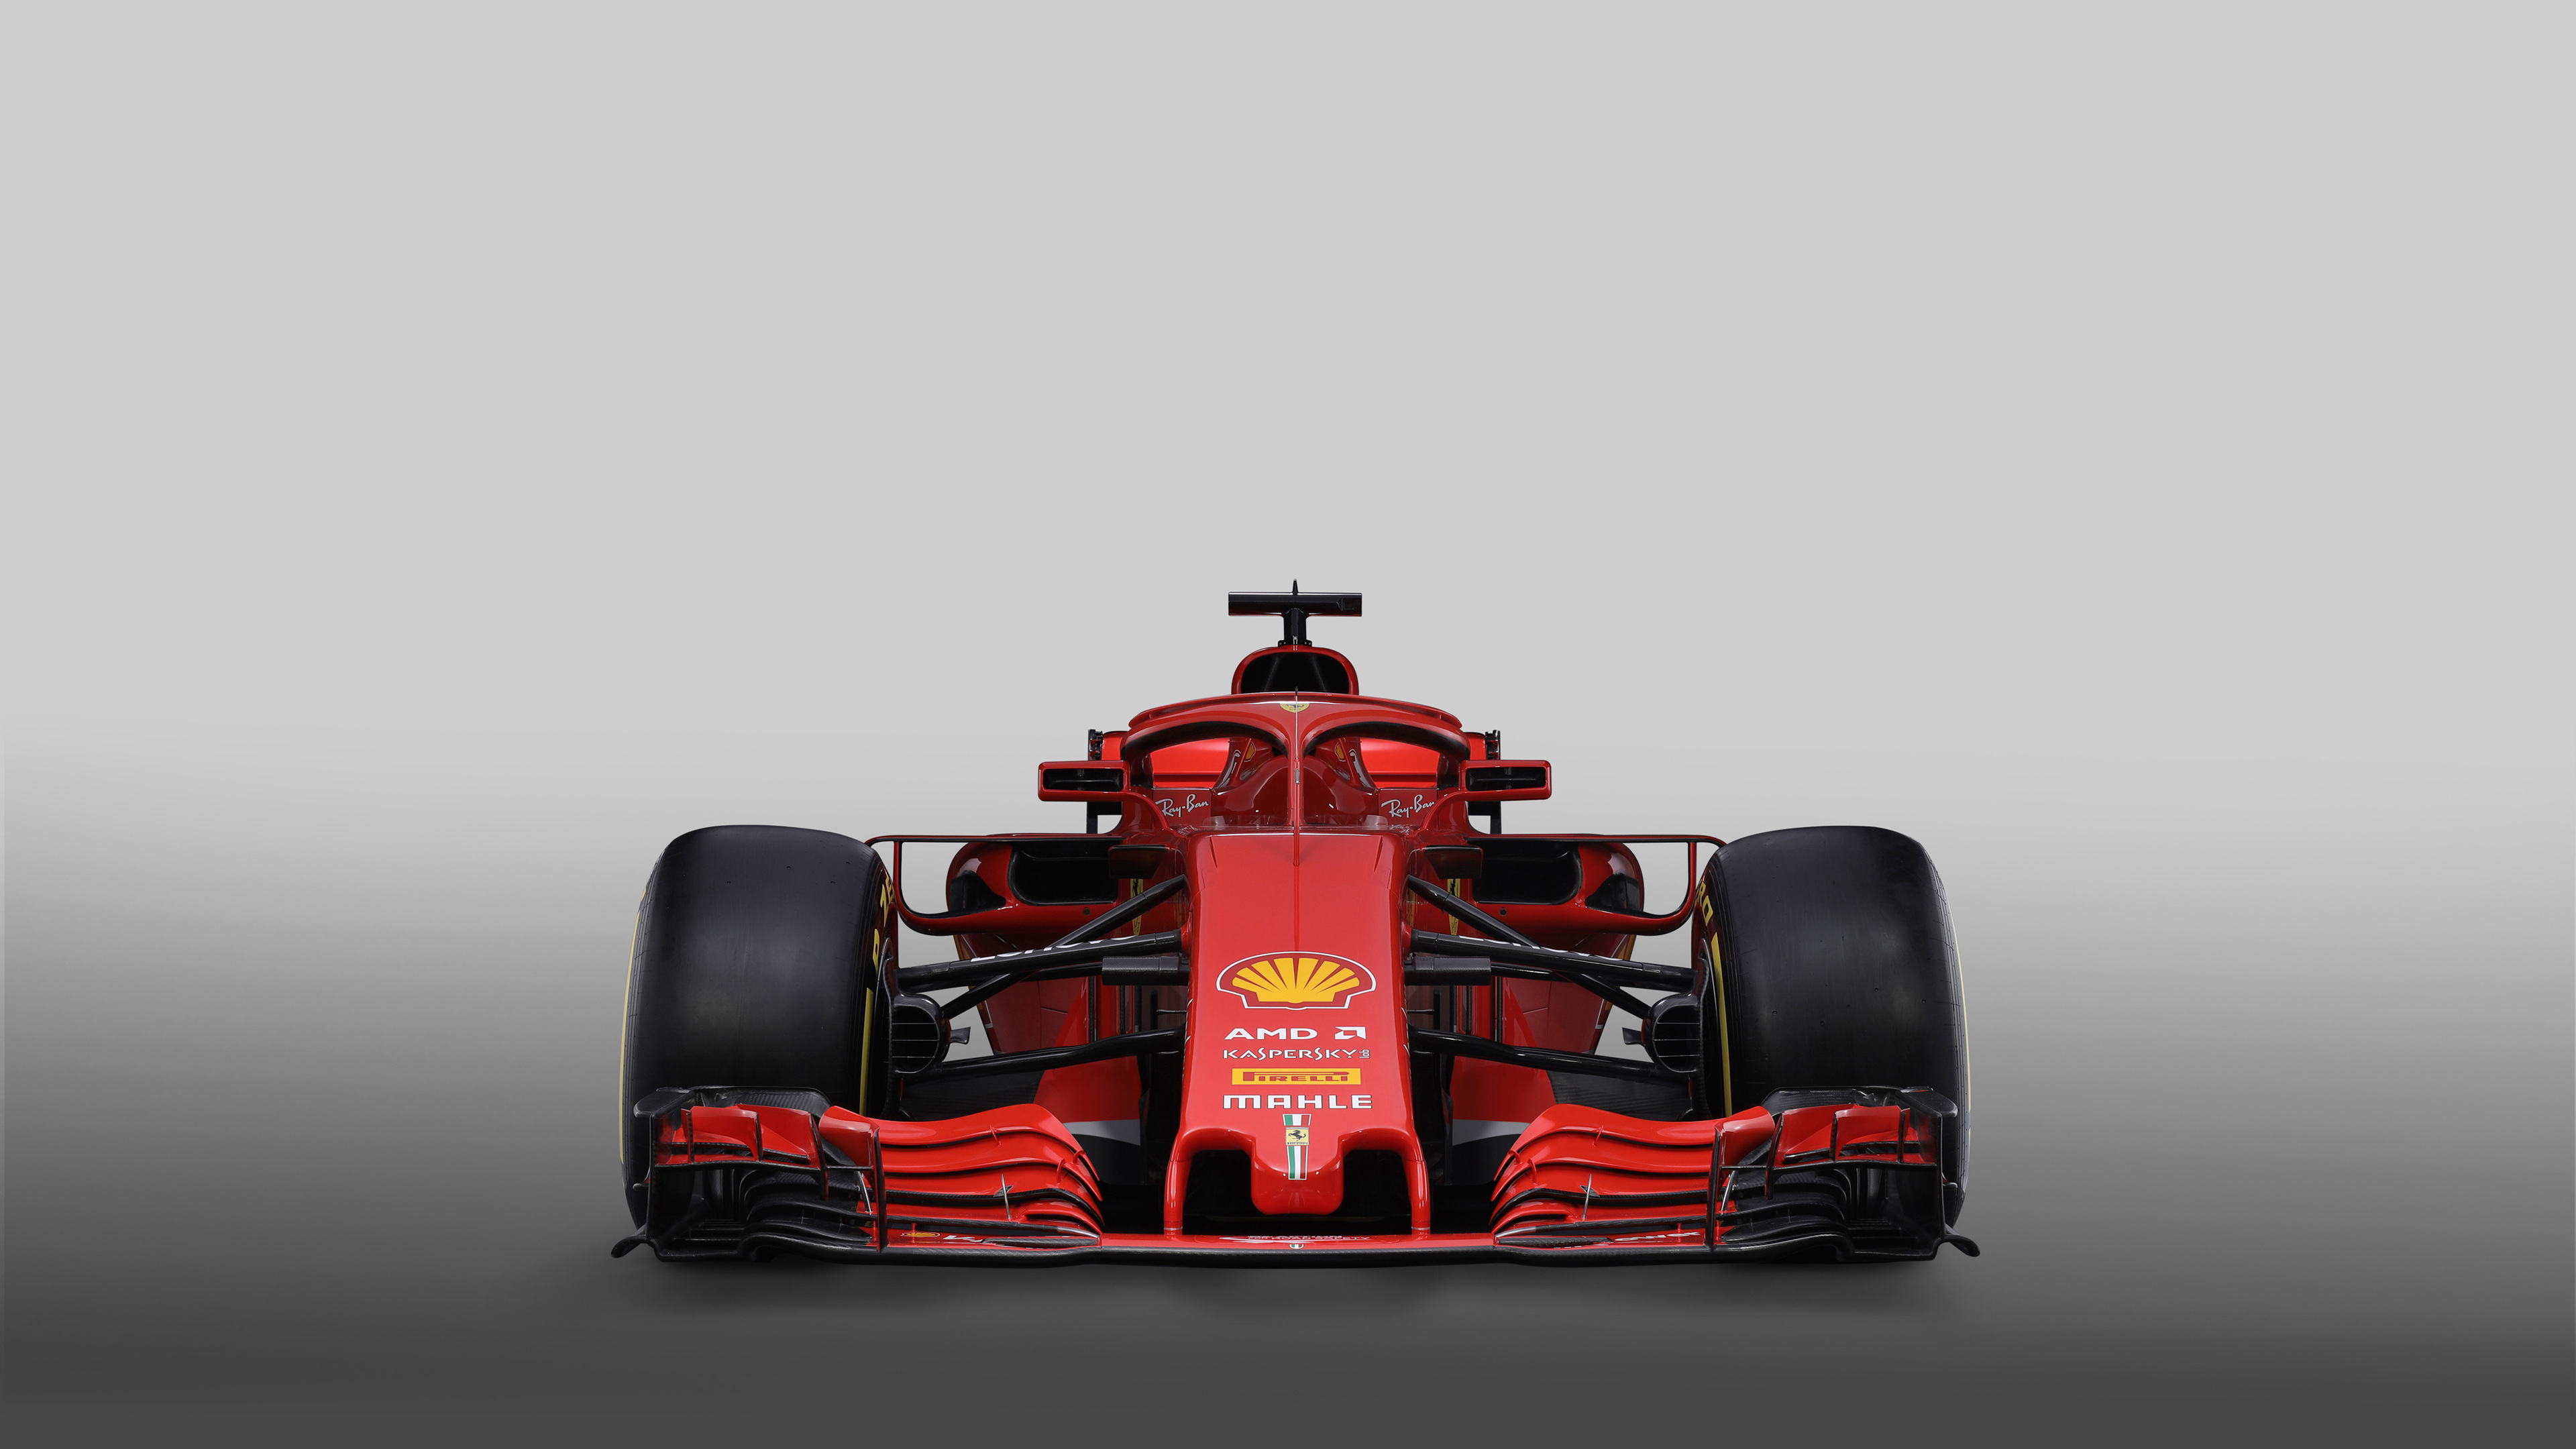 ferrari sf71h 2018 1539109950 - Ferrari SF71H 2018 - track wallpapers, racing cars wallpapers, hd-wallpapers, ferrari wallpapers, cars wallpapers, 4k-wallpapers, 2018 cars wallpapers